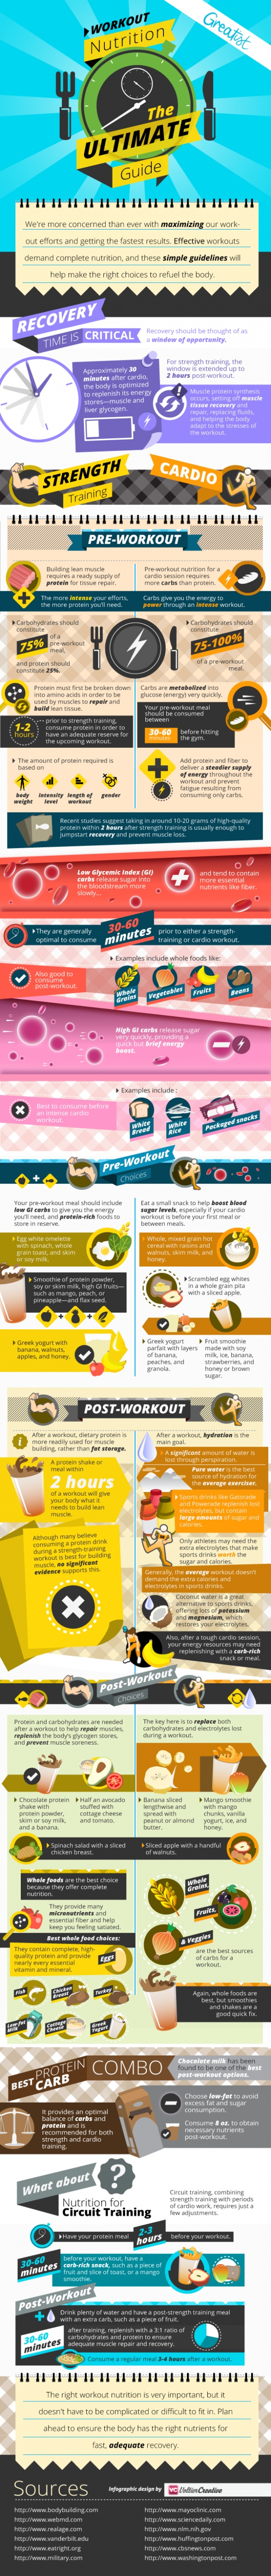 Workout Nutrition the Ultimate Guide